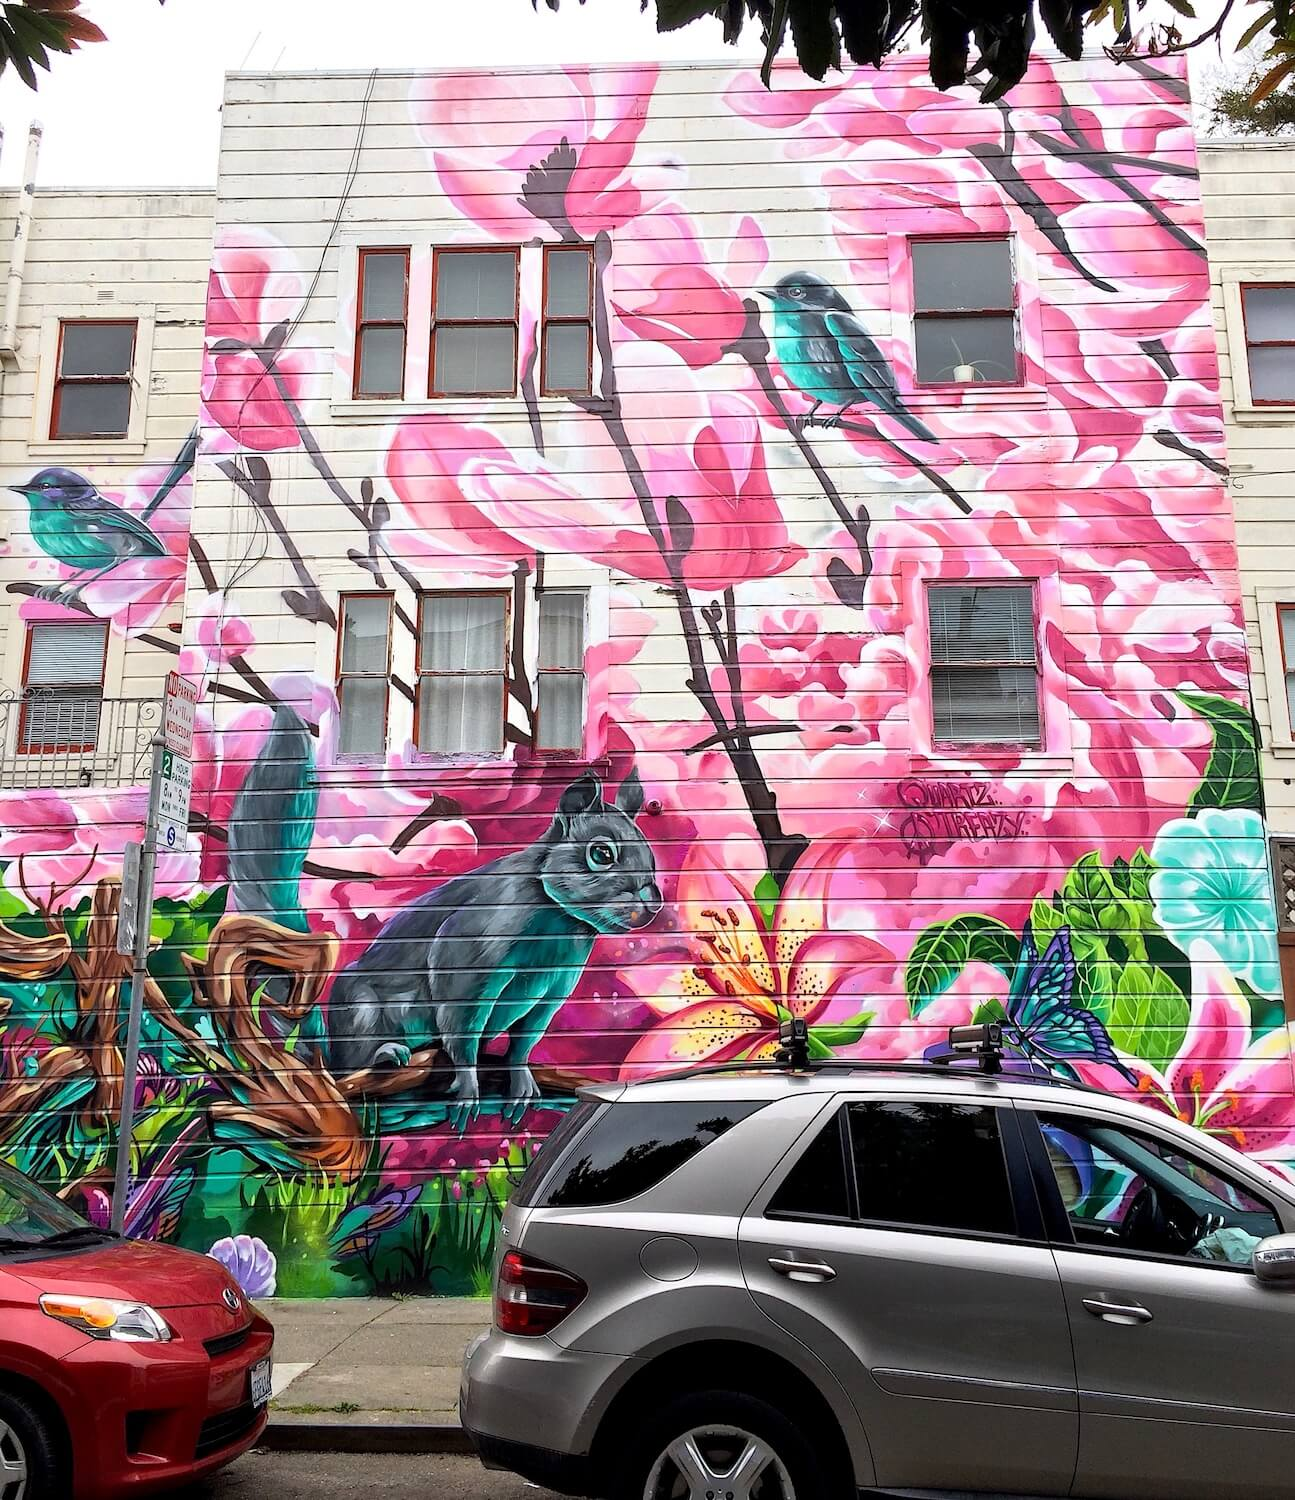 Commissioned Exterior Mural 2 for Gordon Property Management | San Francisco USA, 2017